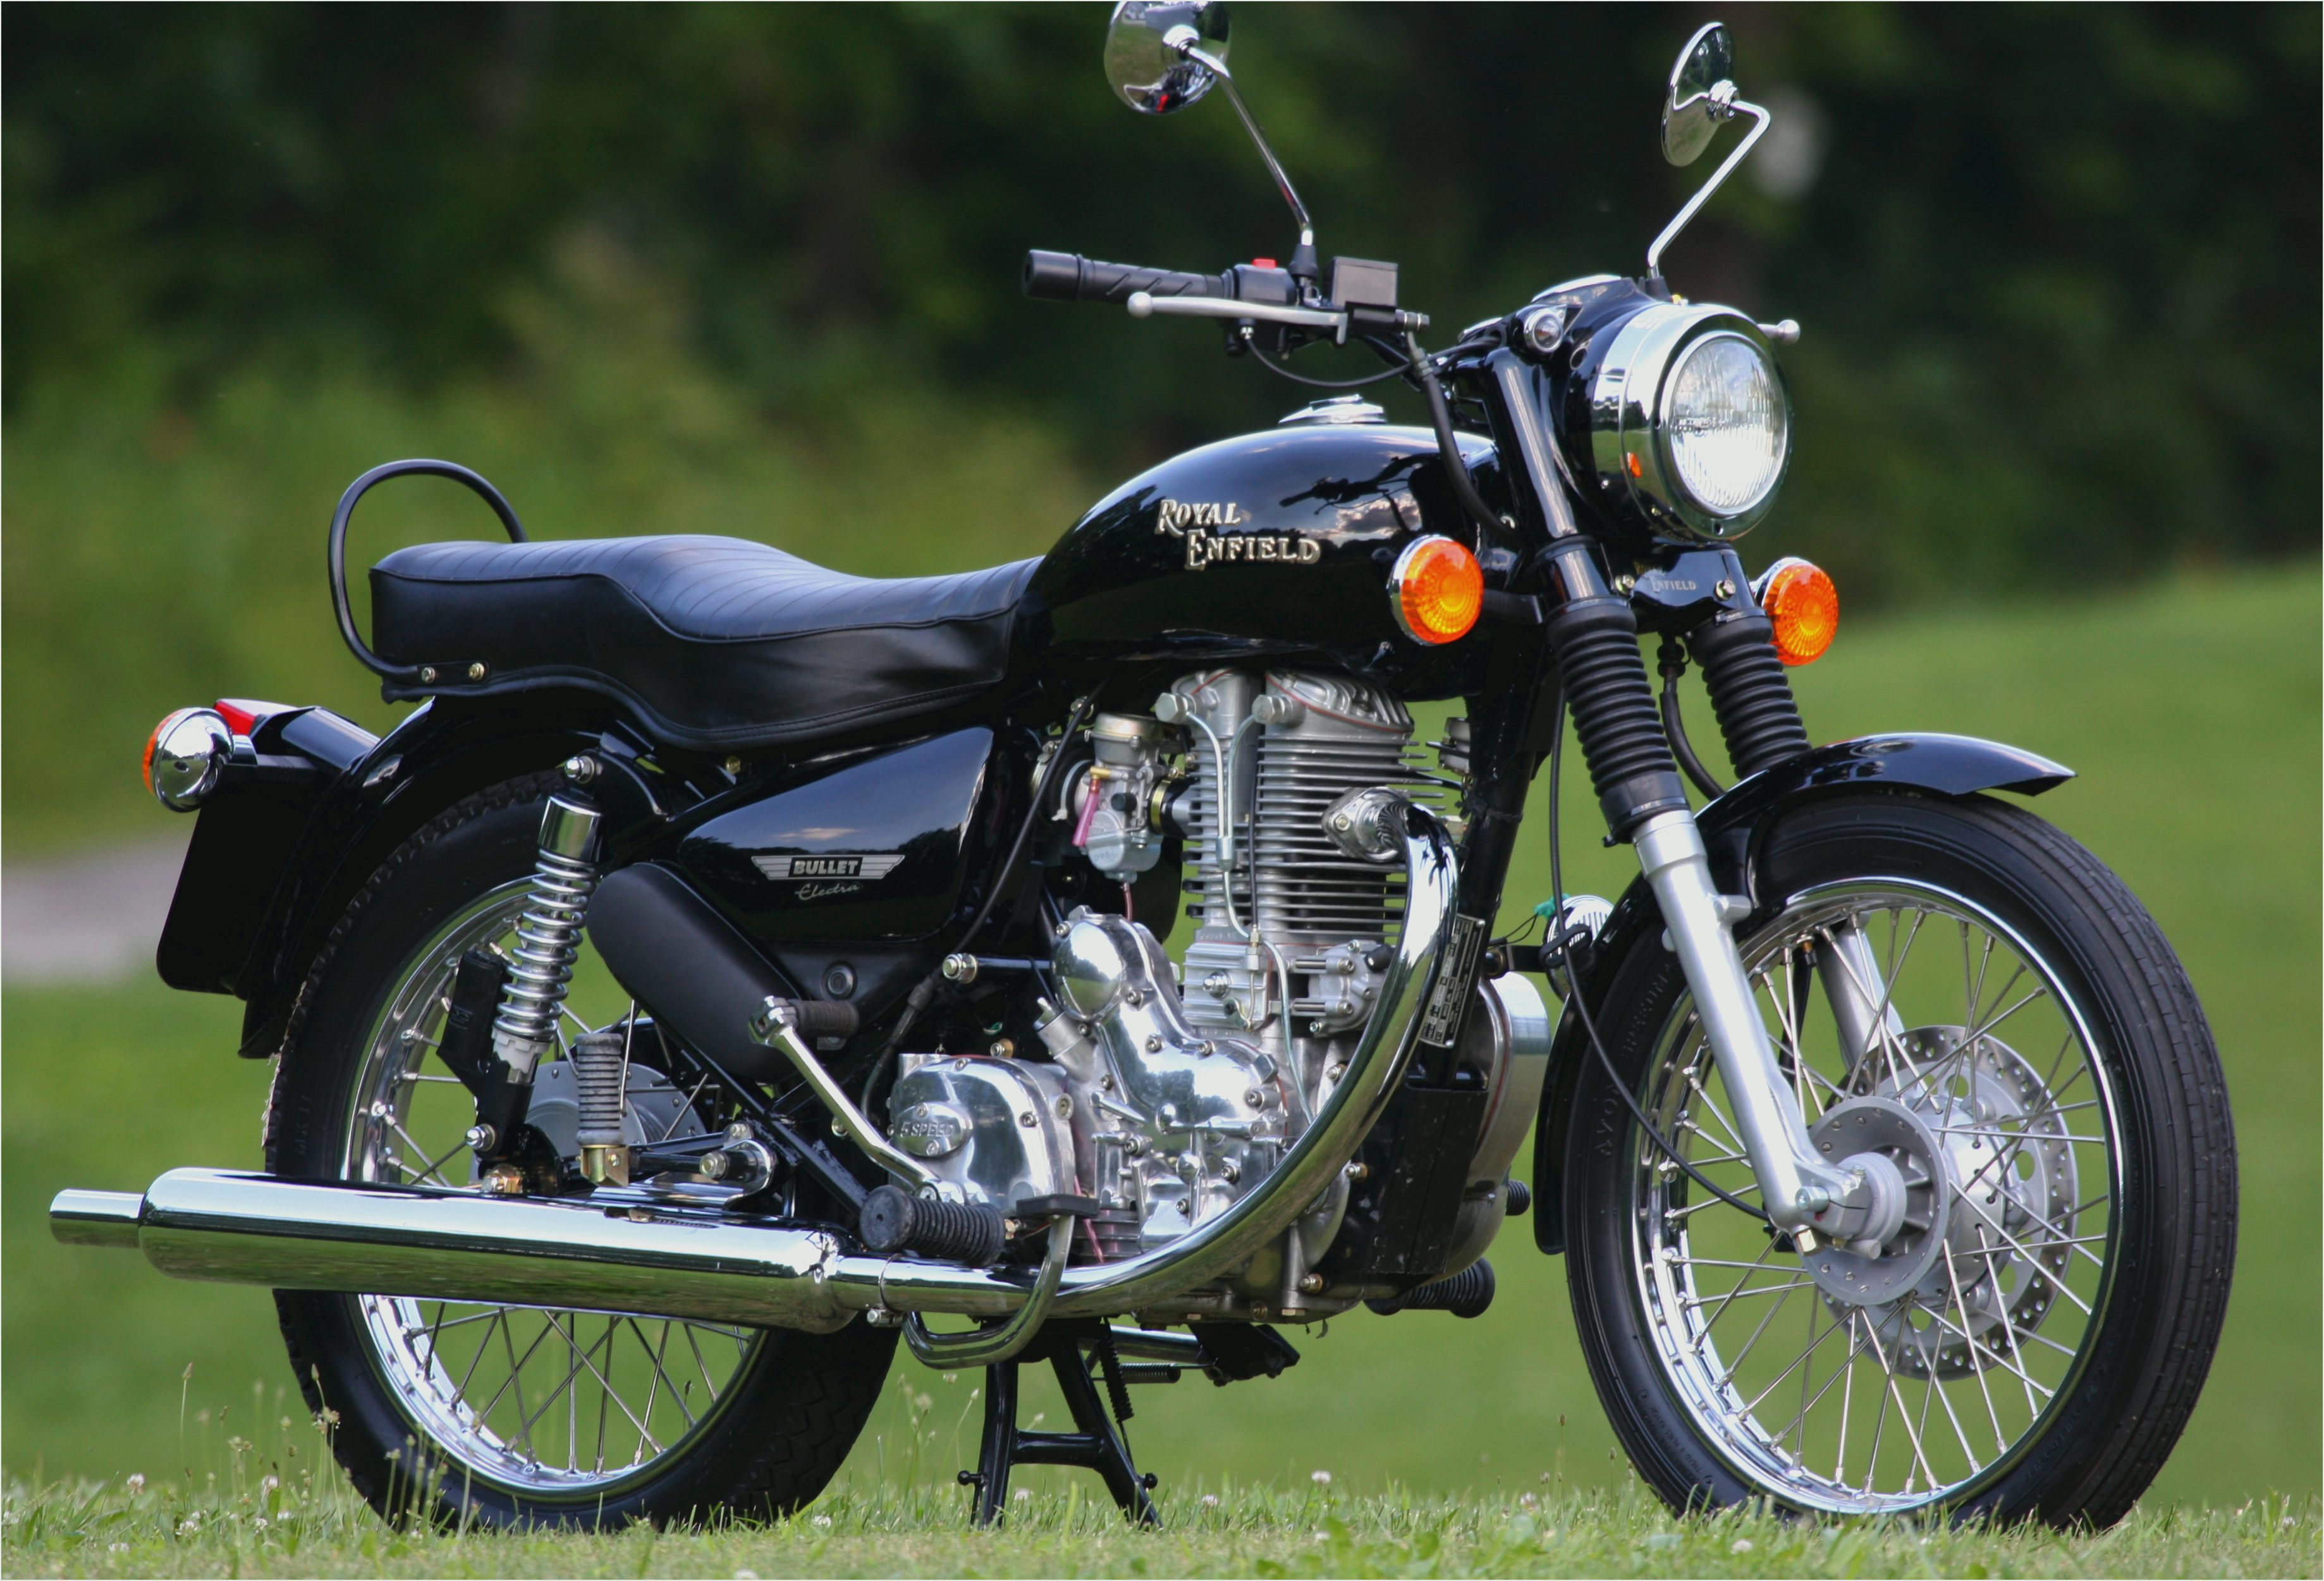 Royal Enfield Bullet 350 Classic 2005 images #123543